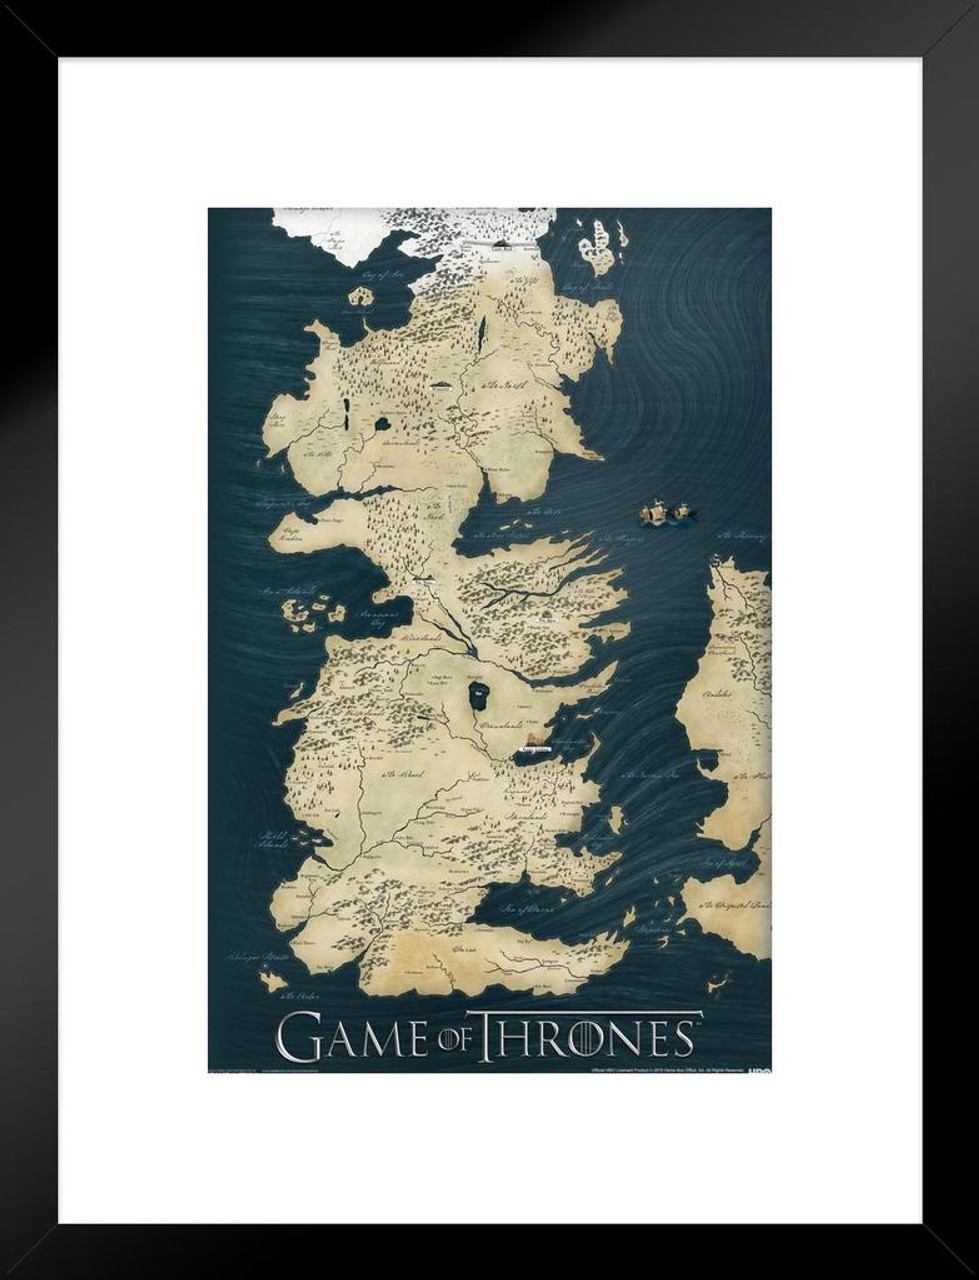 Game of Thrones Westeros Map HBO Fantasy Drama TV Television Series Game Of Thrones Hbo Map on game of thrones maps pdf, game of thrones hbo series, deadwood hbo, true detective hbo, game of thrones hbo store, game of thrones maps and families,